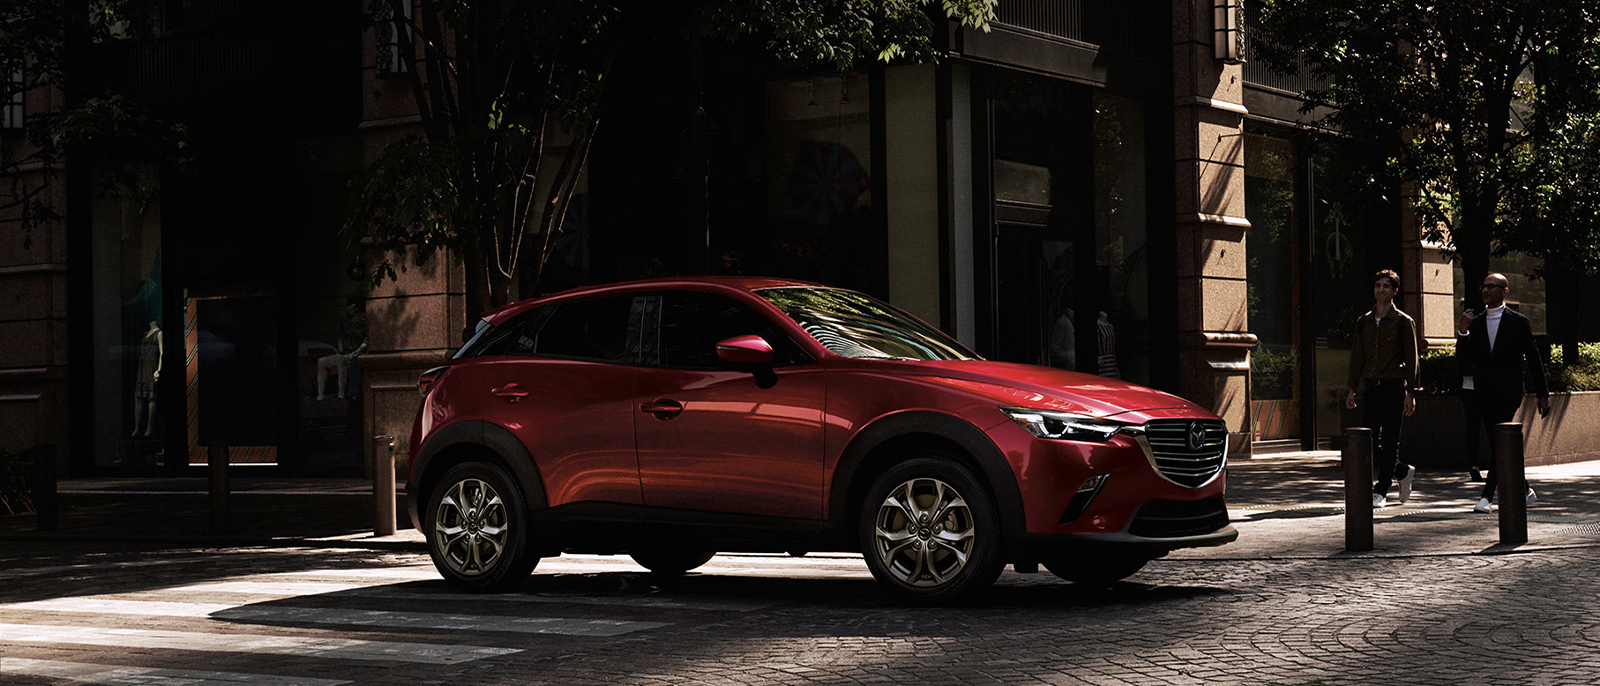 Red Mazda CX-3 parked in a street